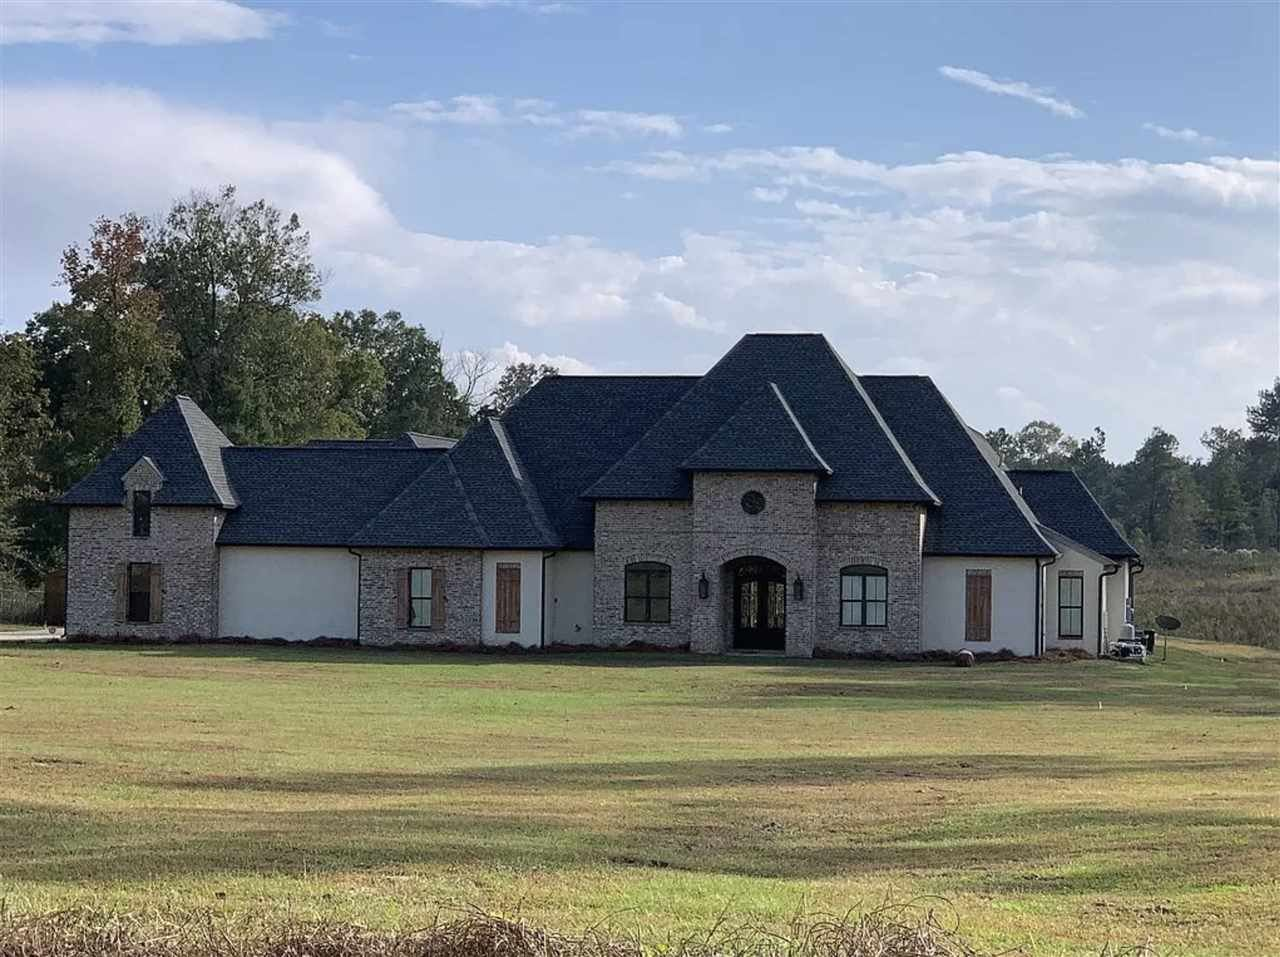 148 STULL RD, Brandon, MS 39047 - MLS#: 337277